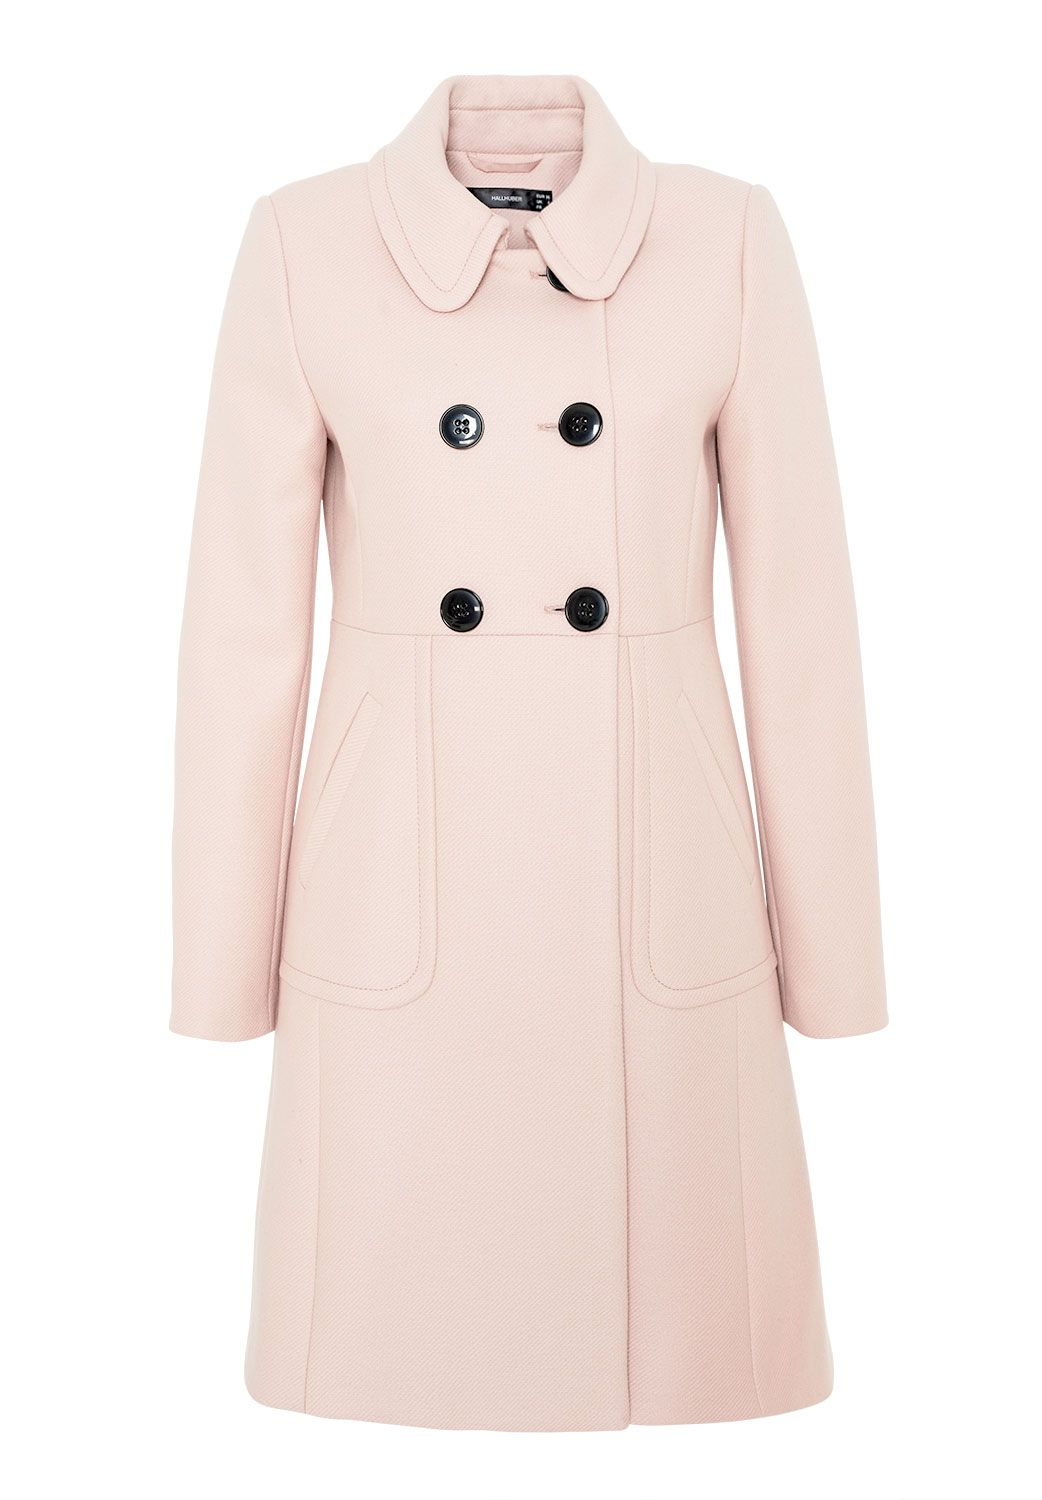 Hallhuber Double Layer Wool Coat, Pink